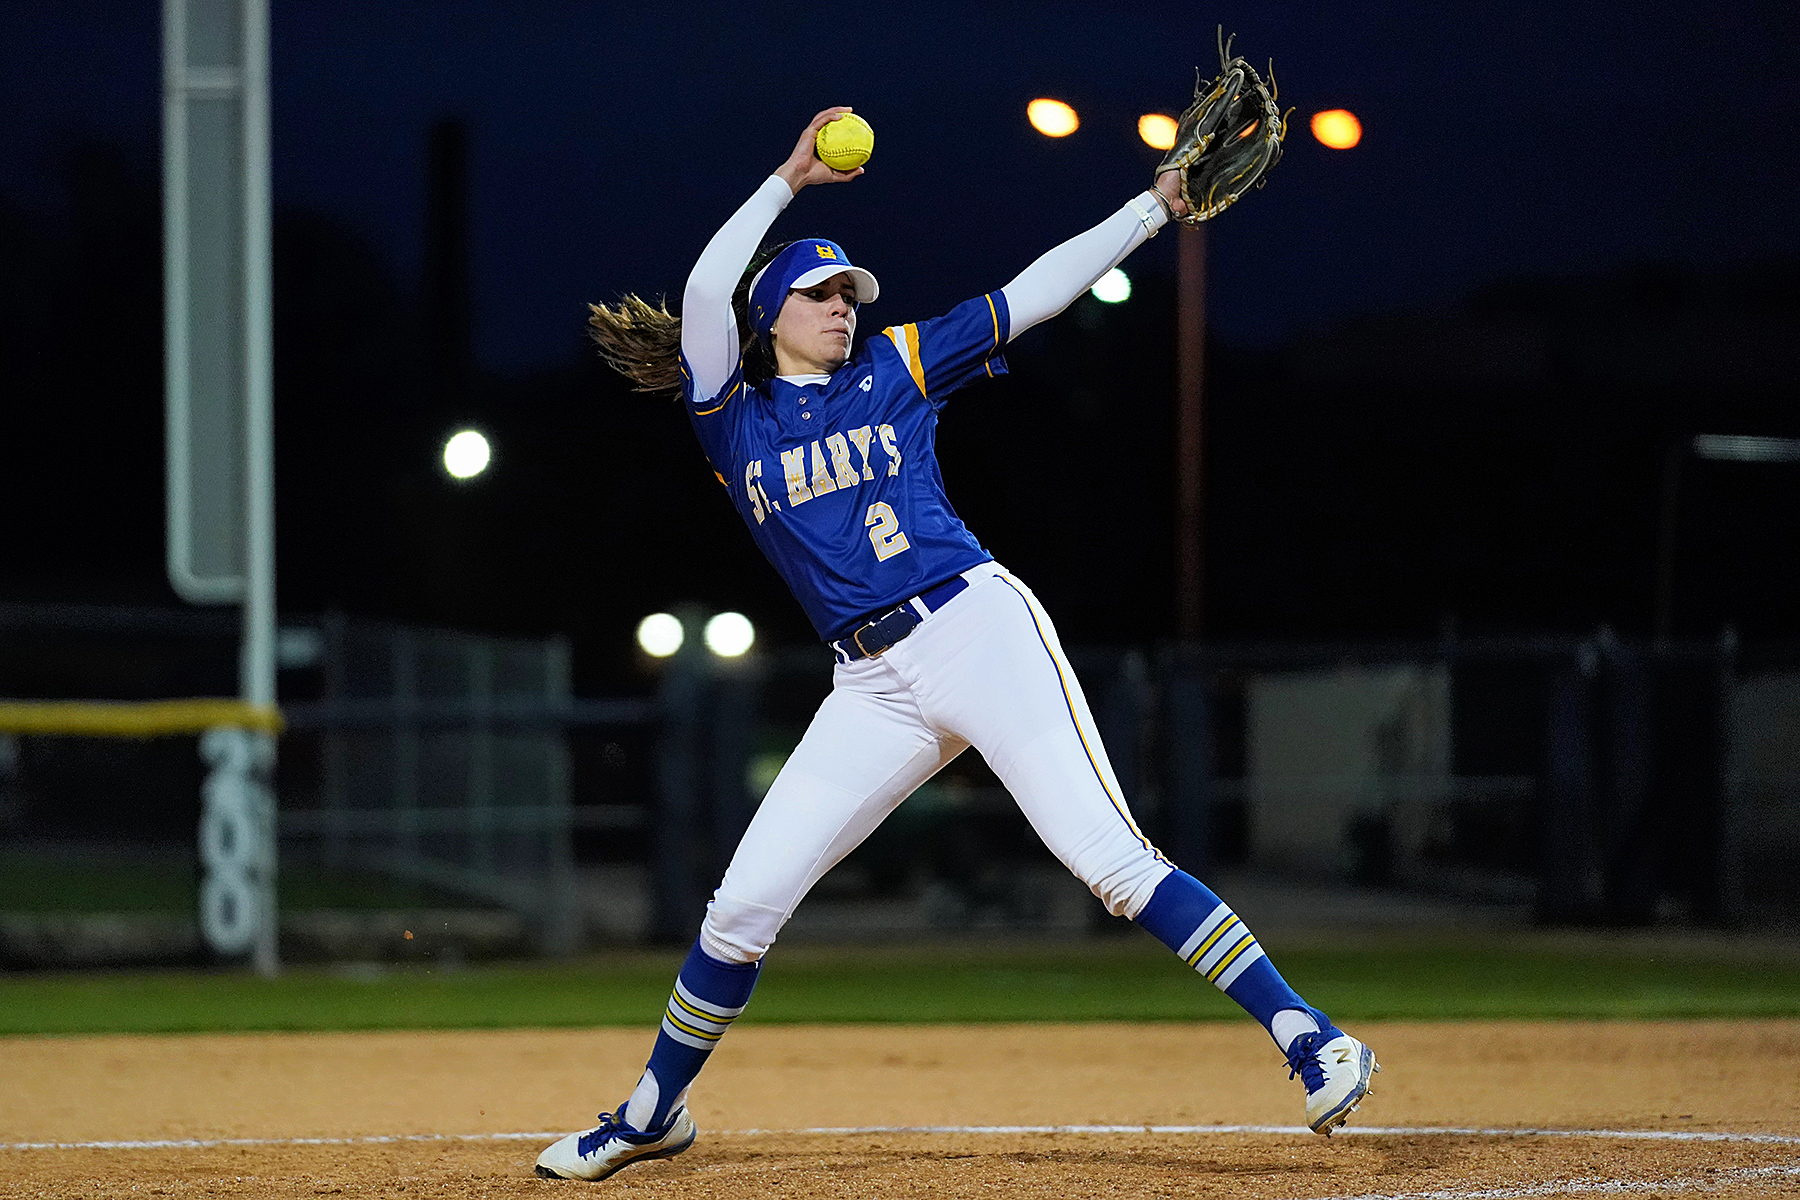 reputable site 2dc94 f347d Softball splits at Texas A&M Kingsville - St. Mary's ...